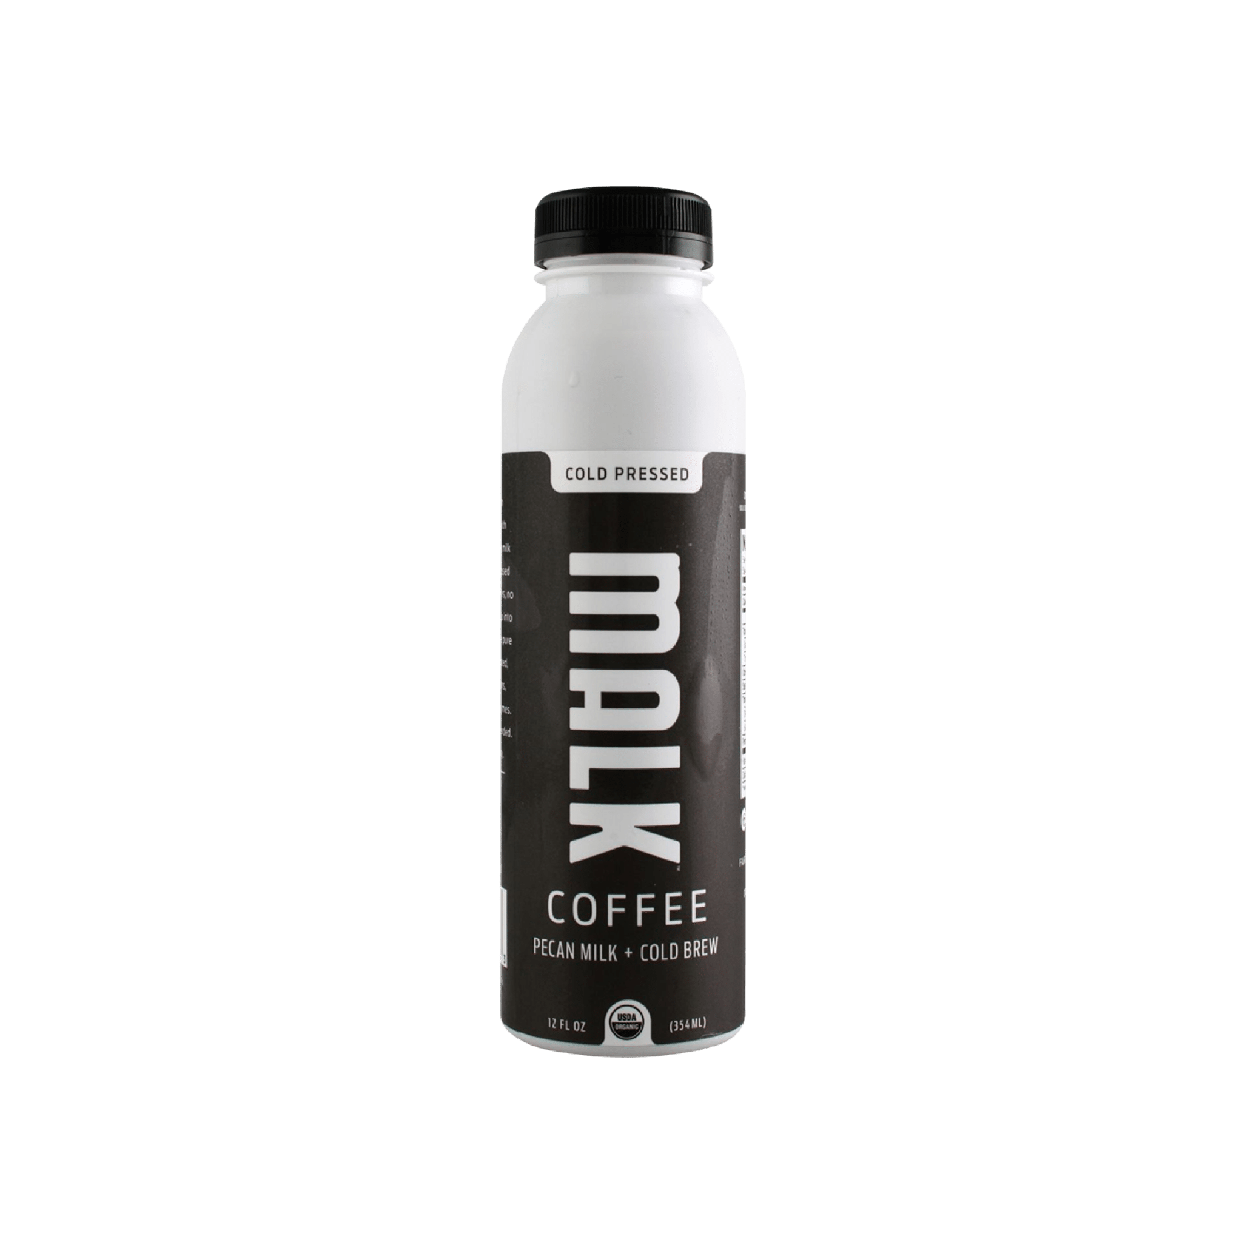 malk pecan milk coffee